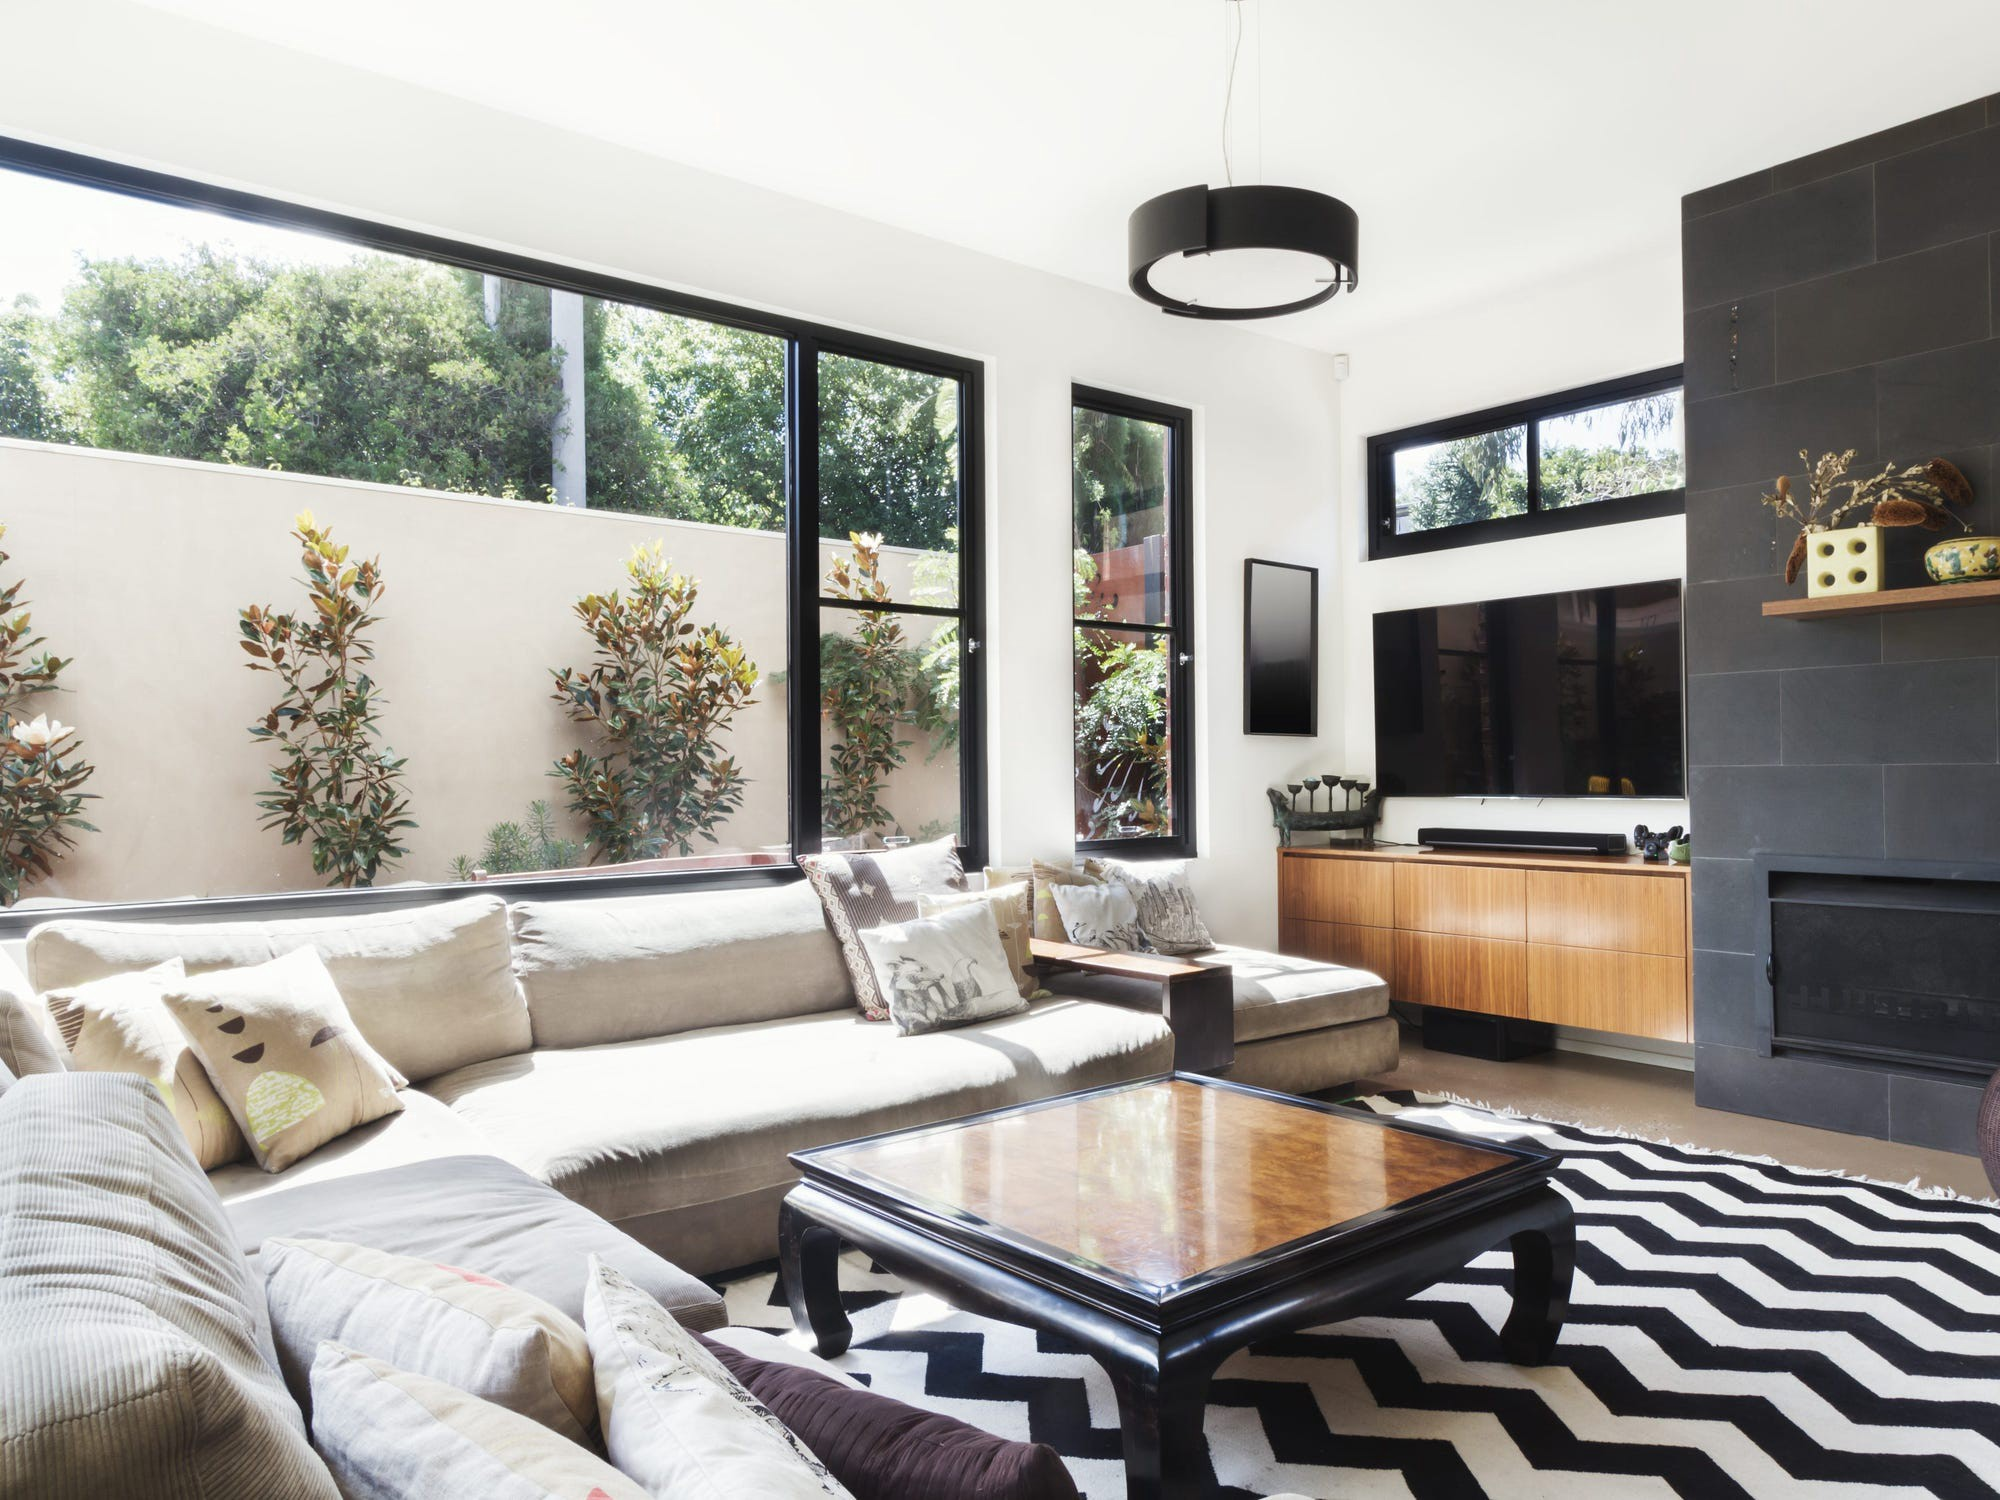 A modern living room with a black and white color scheme.